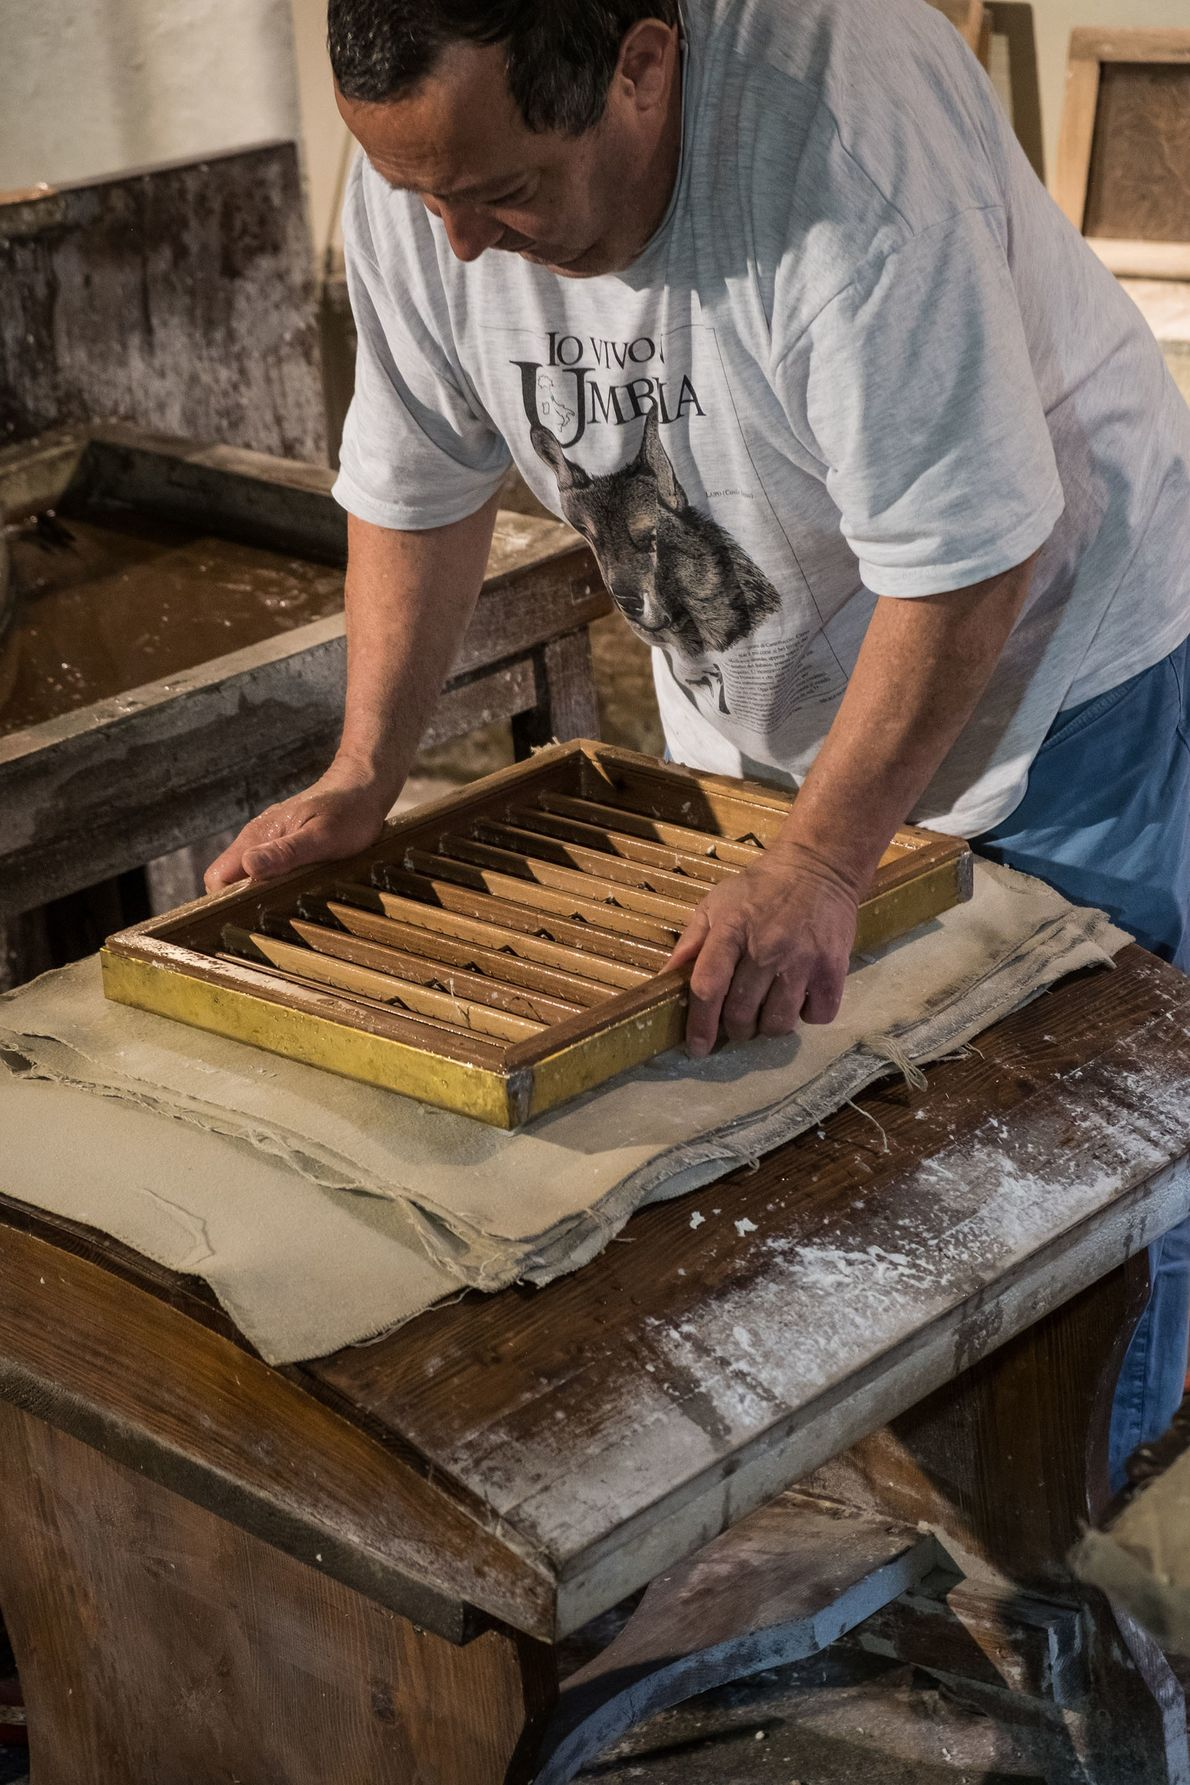 Further stages of paper-making in the workshop at Fabriano's Paper and Watermark Museum.